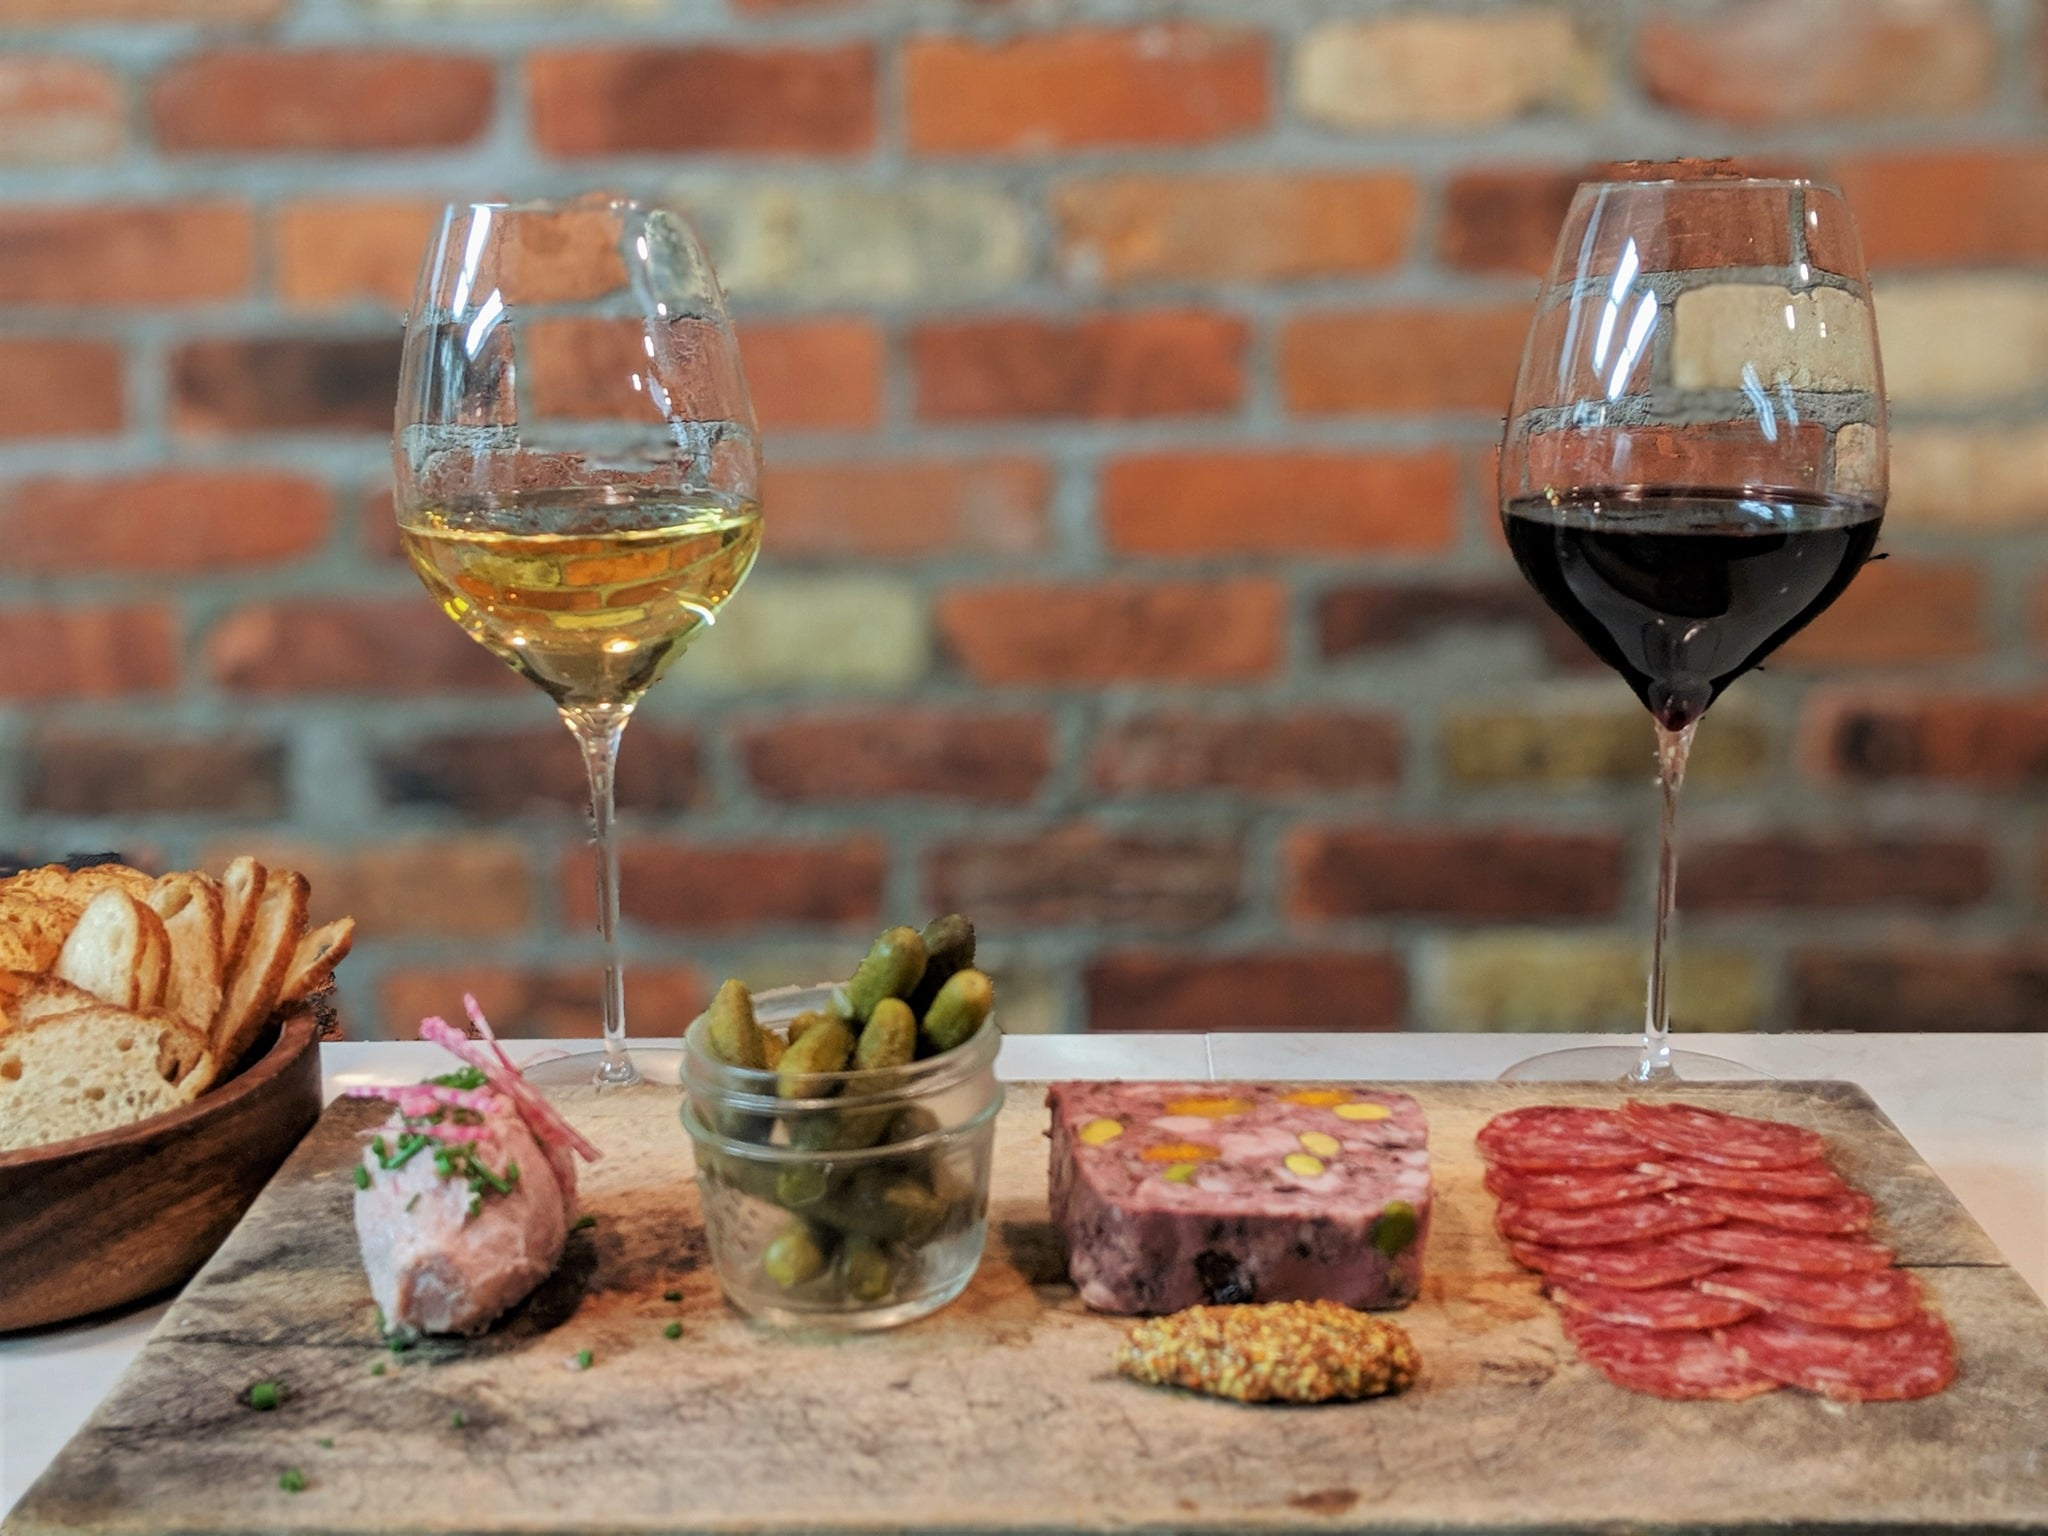 cheese and charcuterie from Grand Cru Deli